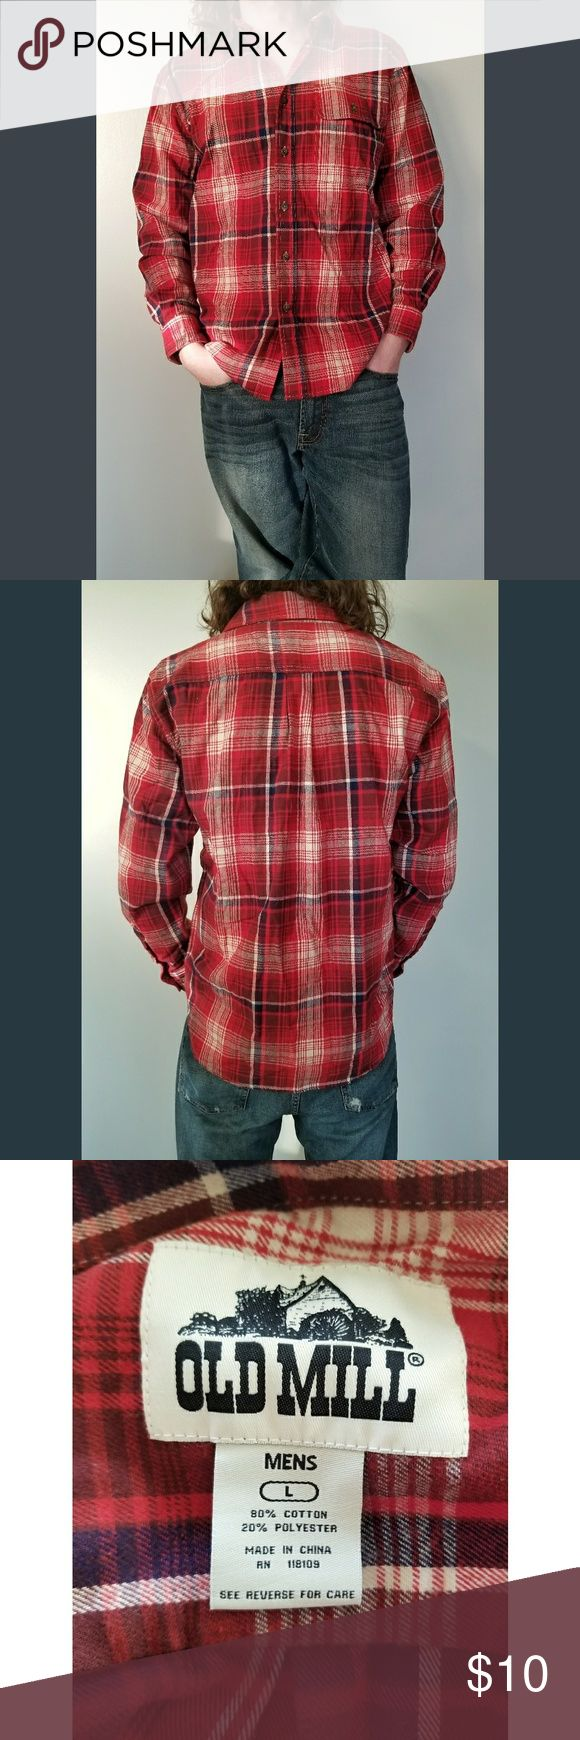 Men's Old Mill Long Sleeve Flannel Button Down Men's Old Mill Long Sleeve Flannel Button Down  ◾Condition: Used, worn once ◾Size: Large ◾Brand: Old Mill ◾Color: Red/Blue Plaid  ◾Button down ◾Left chest pocket ◾80% Cotton, 20% Polyester Old Mill Shirts Casual Button Down Shirts